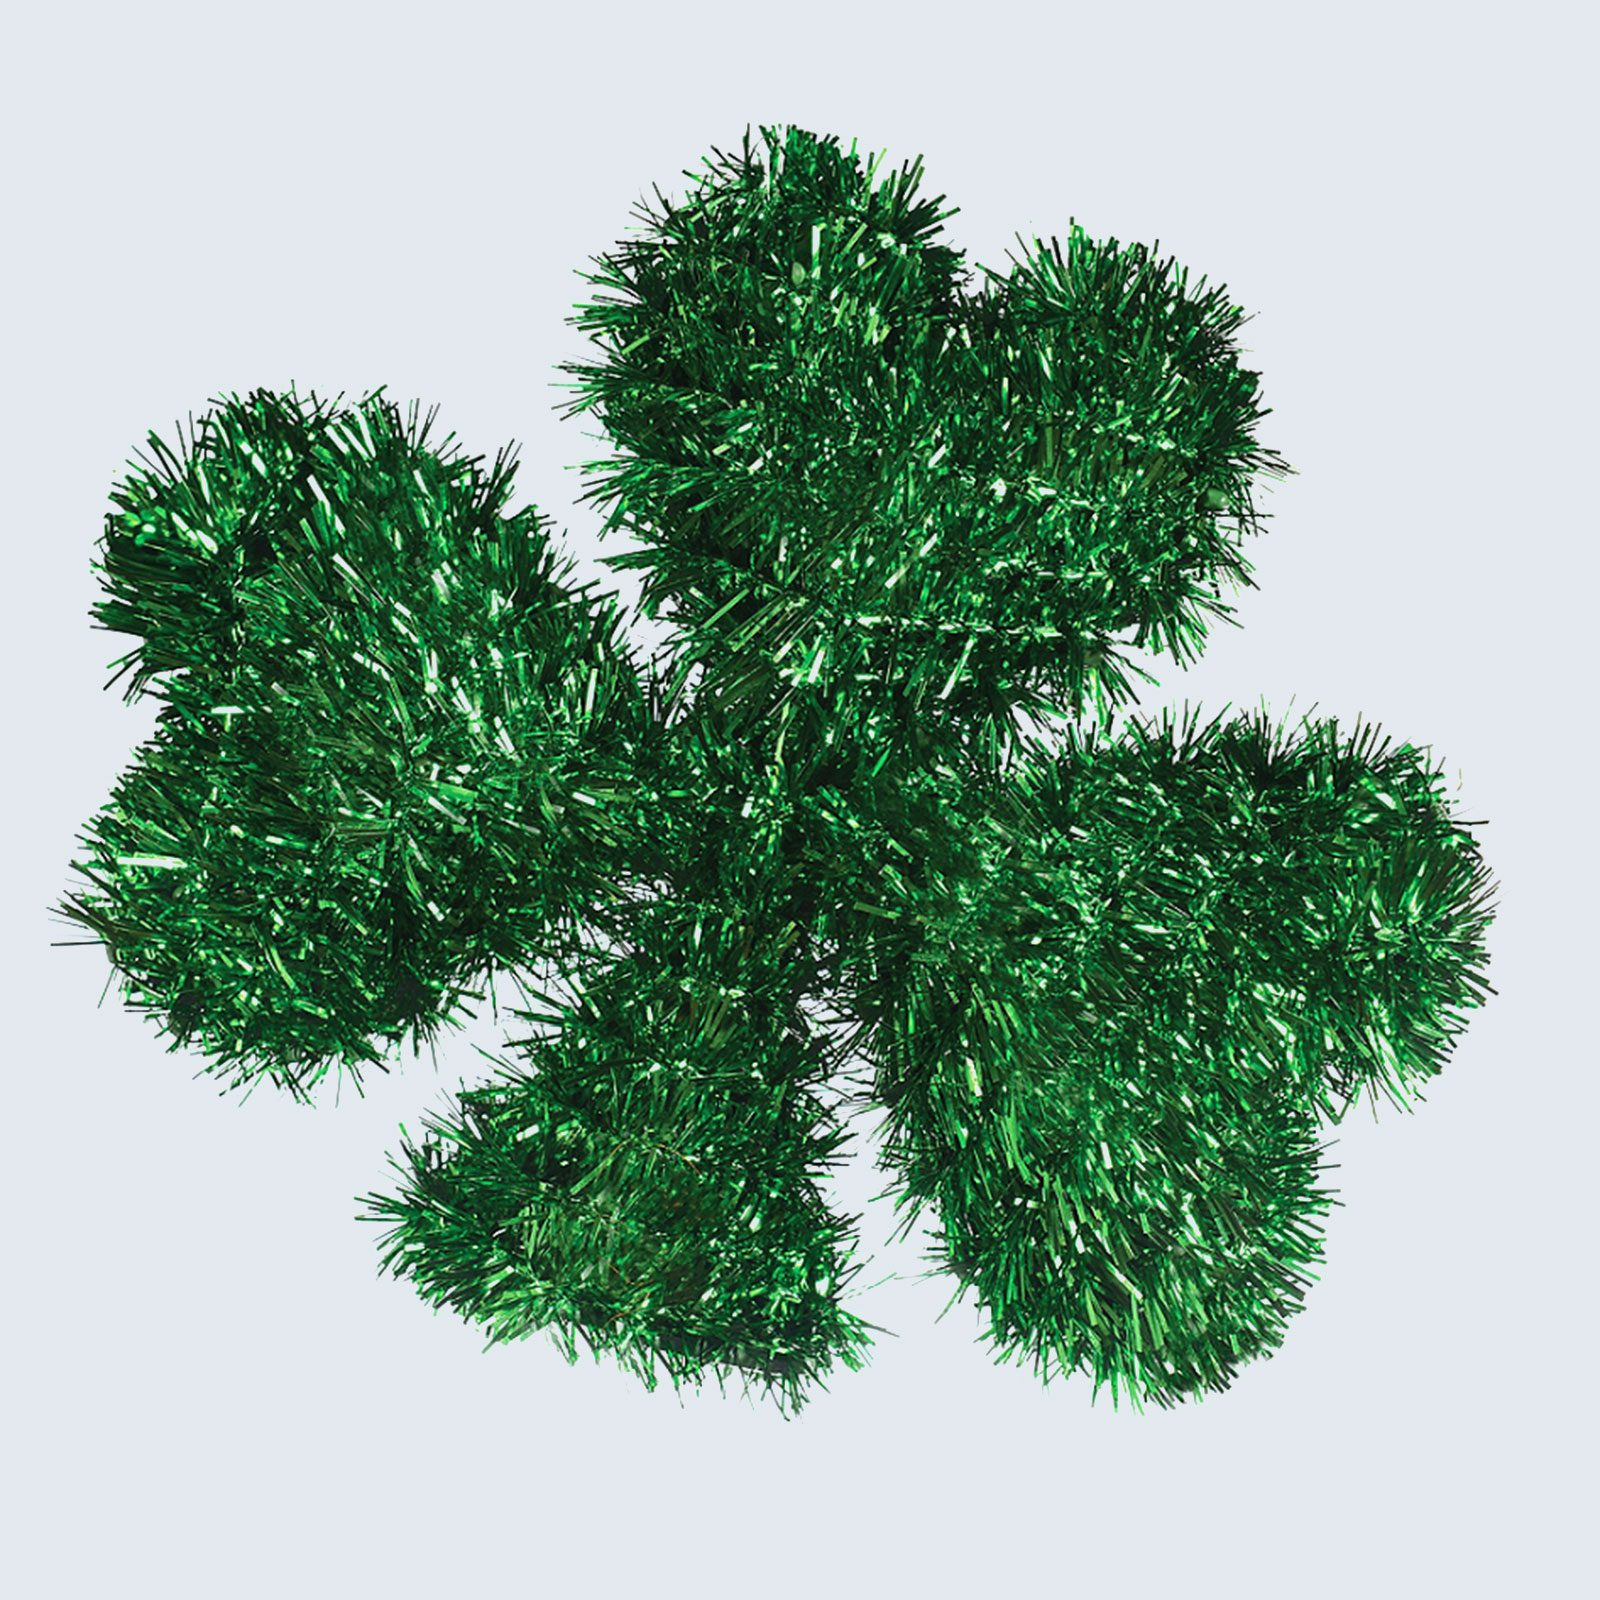 Party supplies: Party City St. Patrick's Day decor